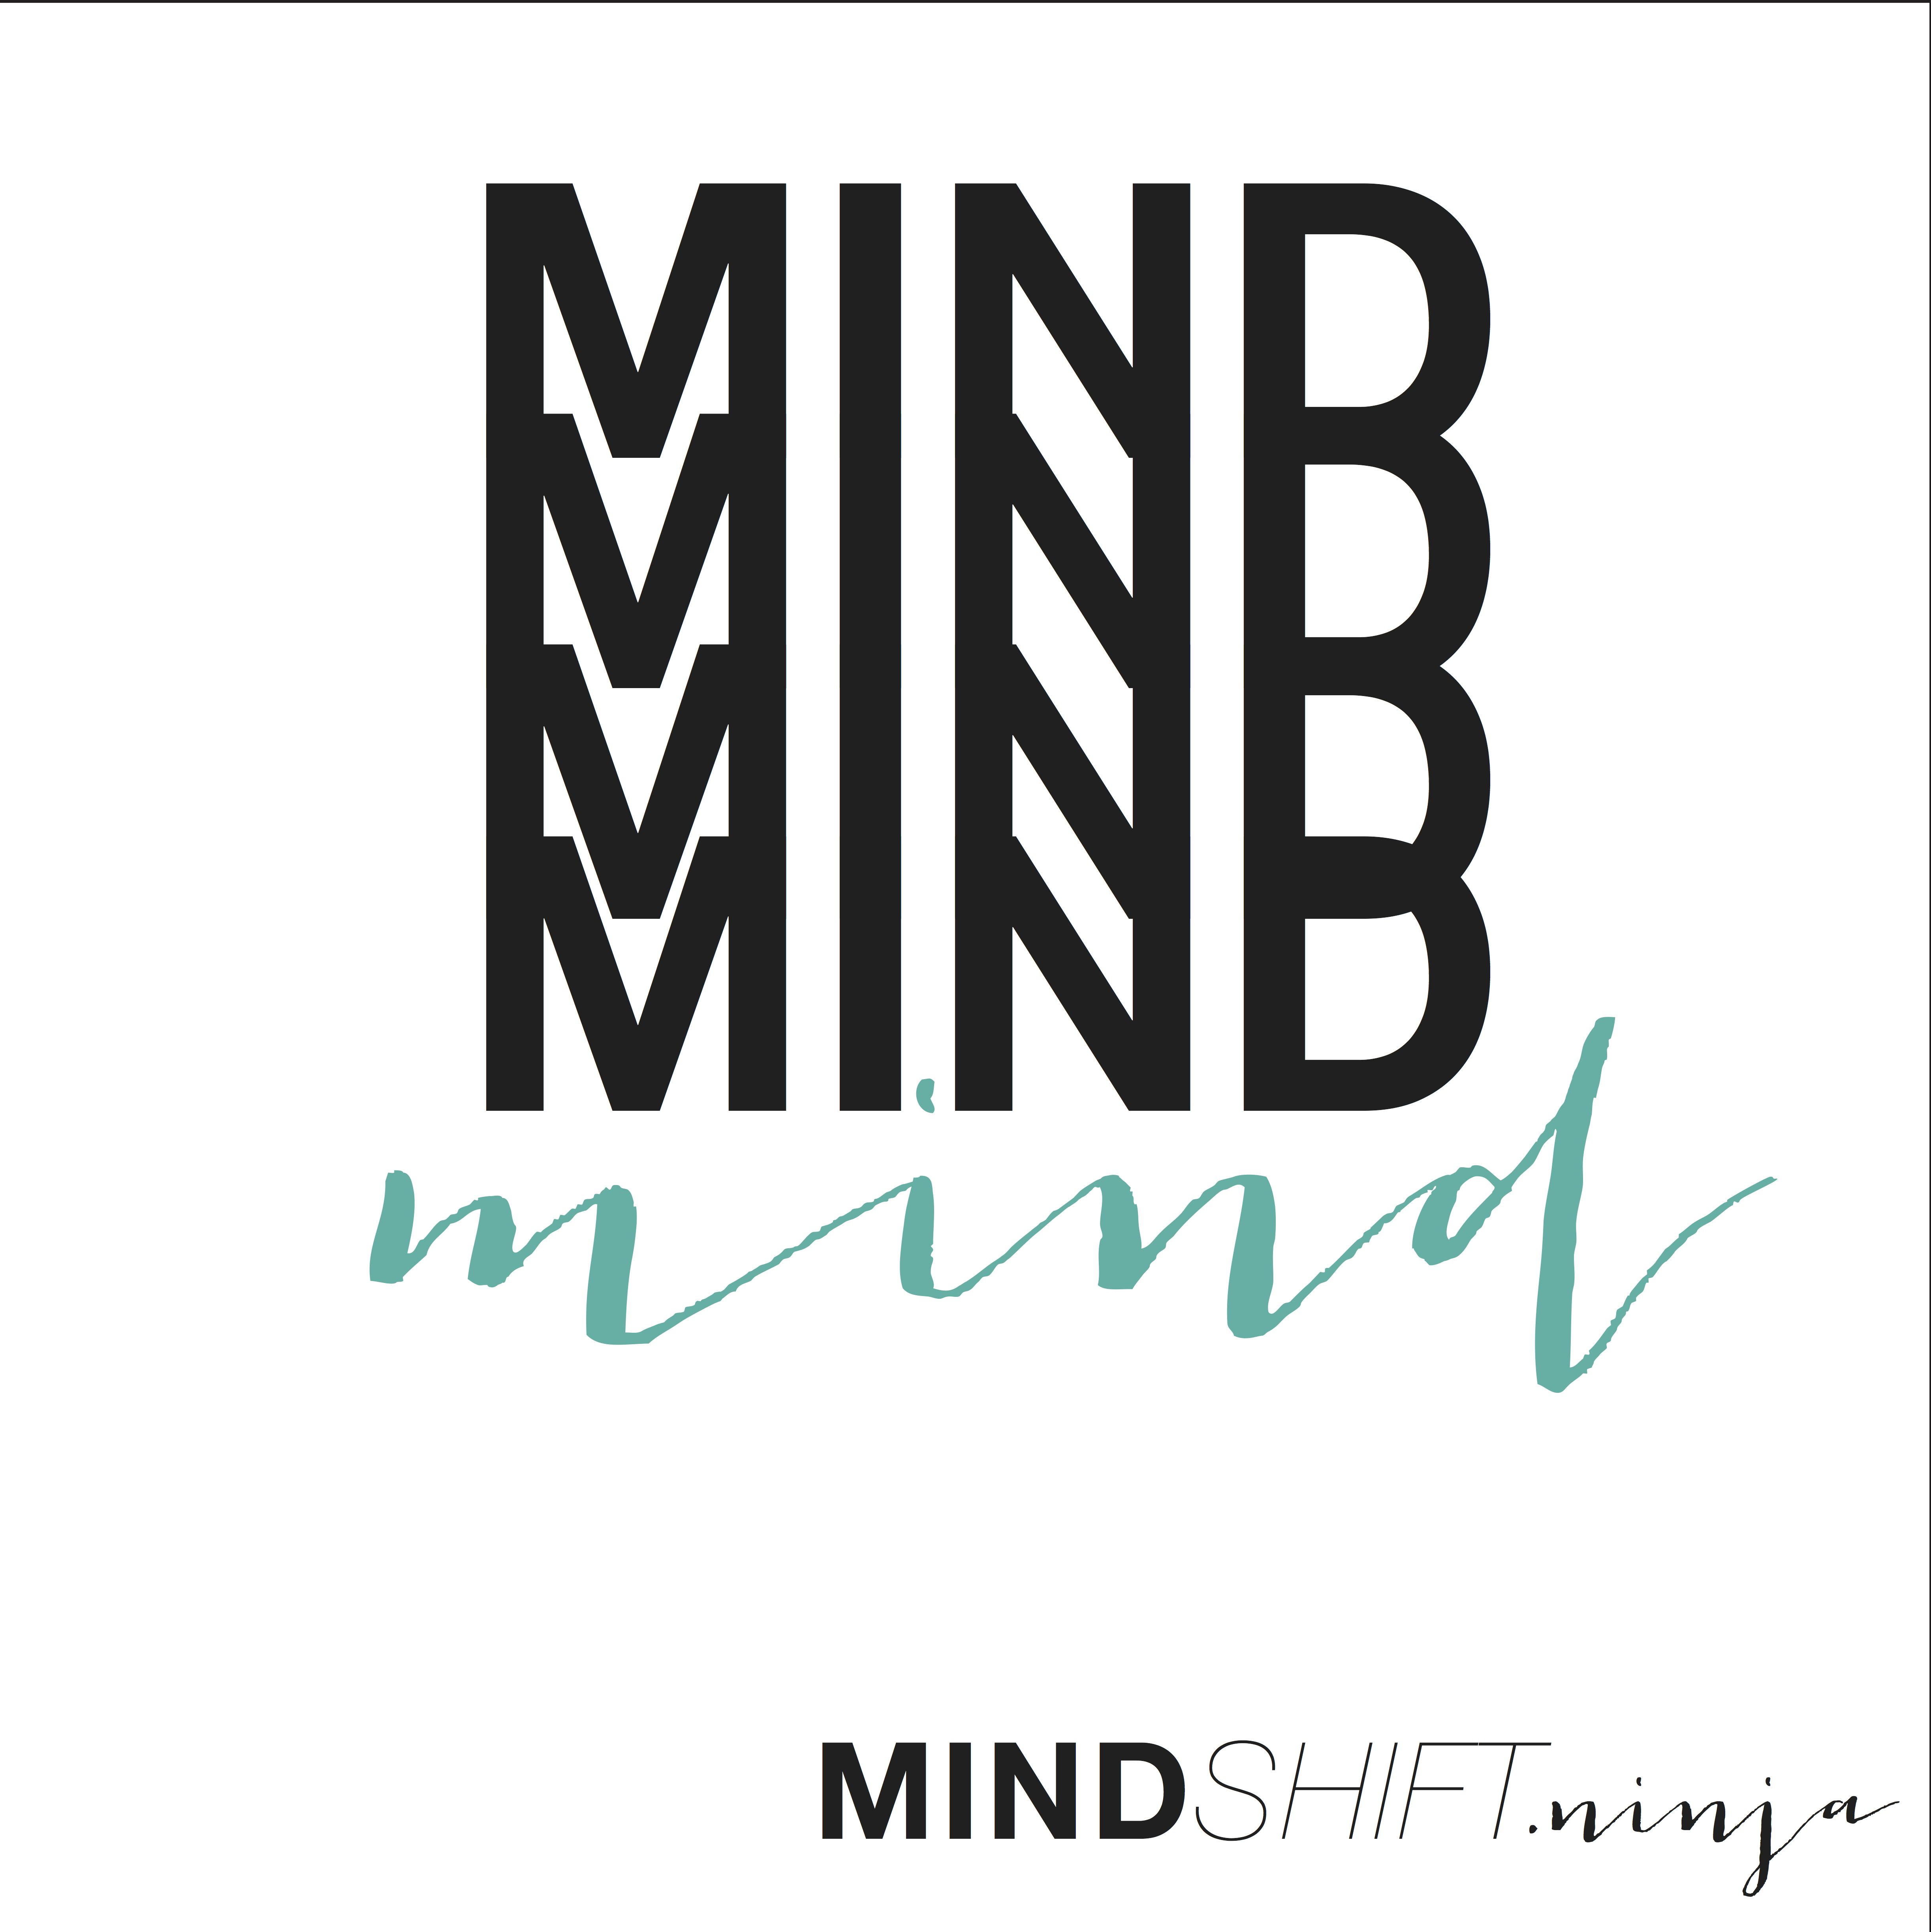 MIND is your tool for breakthrough. www.mindshift.ninja